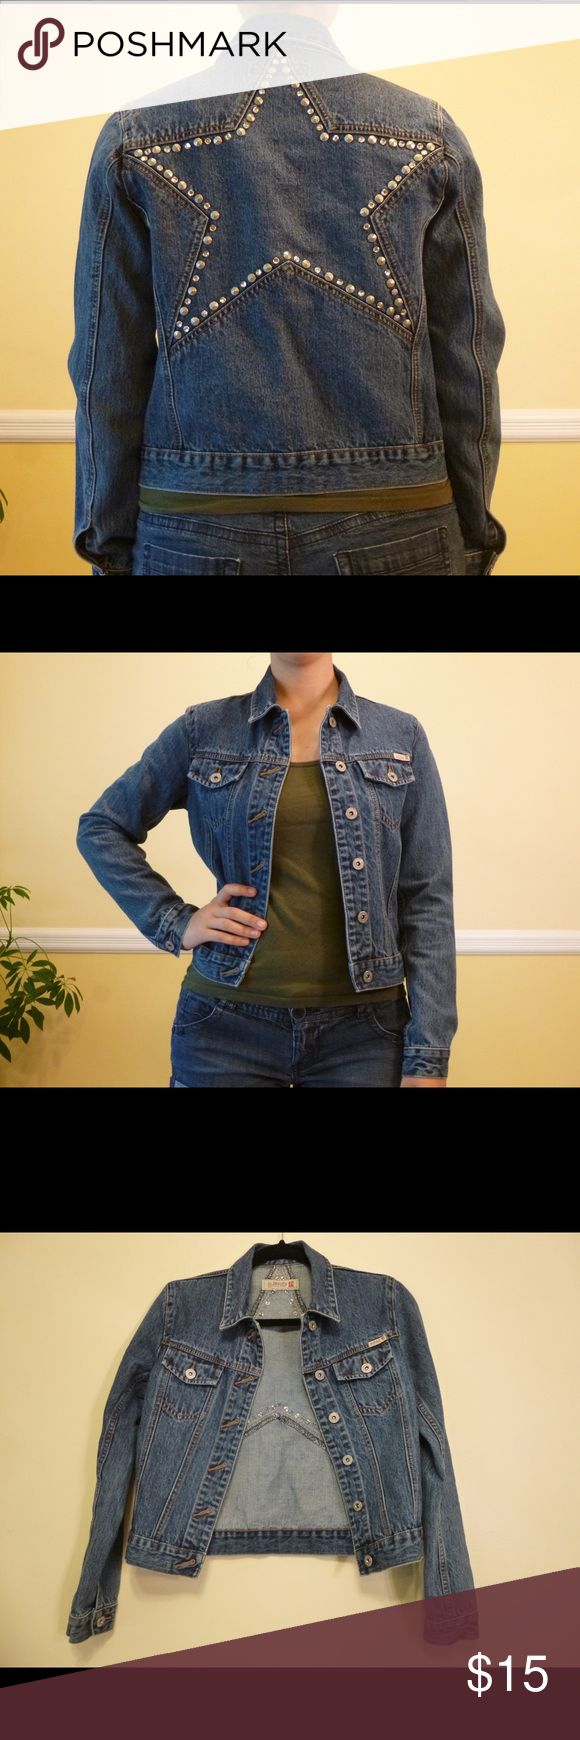 Buffalo jeans star studded denim jacket Buffalo jeans denim jacket with star on the back made put of metal studs. Size small 100% cotton. Used but in perfect condition Buffalo Jackets & Coats Jean Jackets